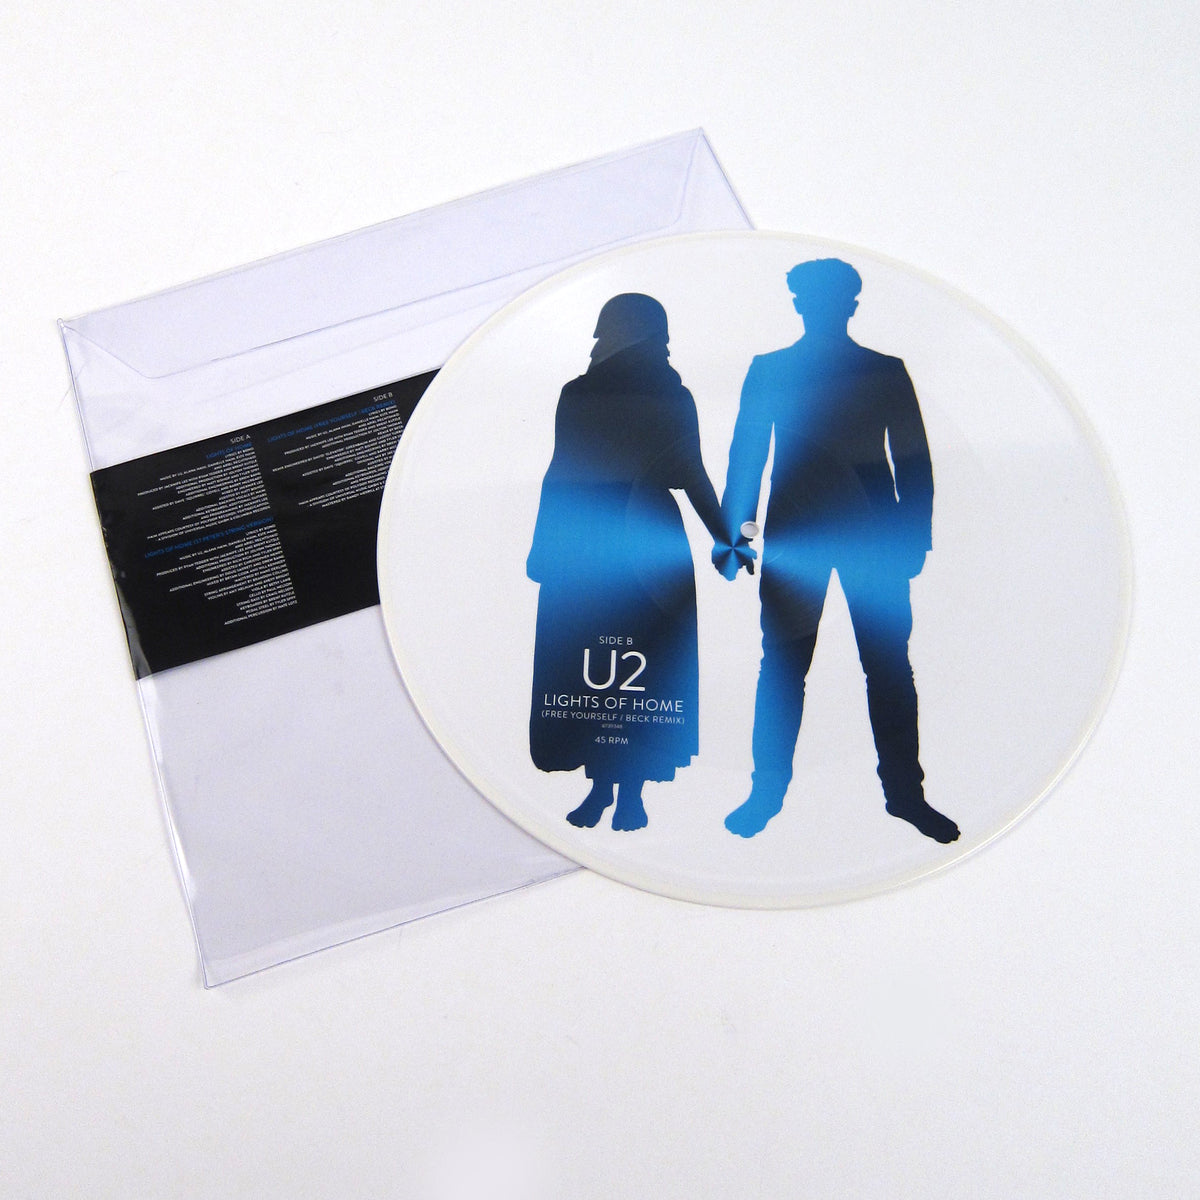 "U2: Lights Of Home (Pic Disc) Vinyl 12"" (Record Store Day)"